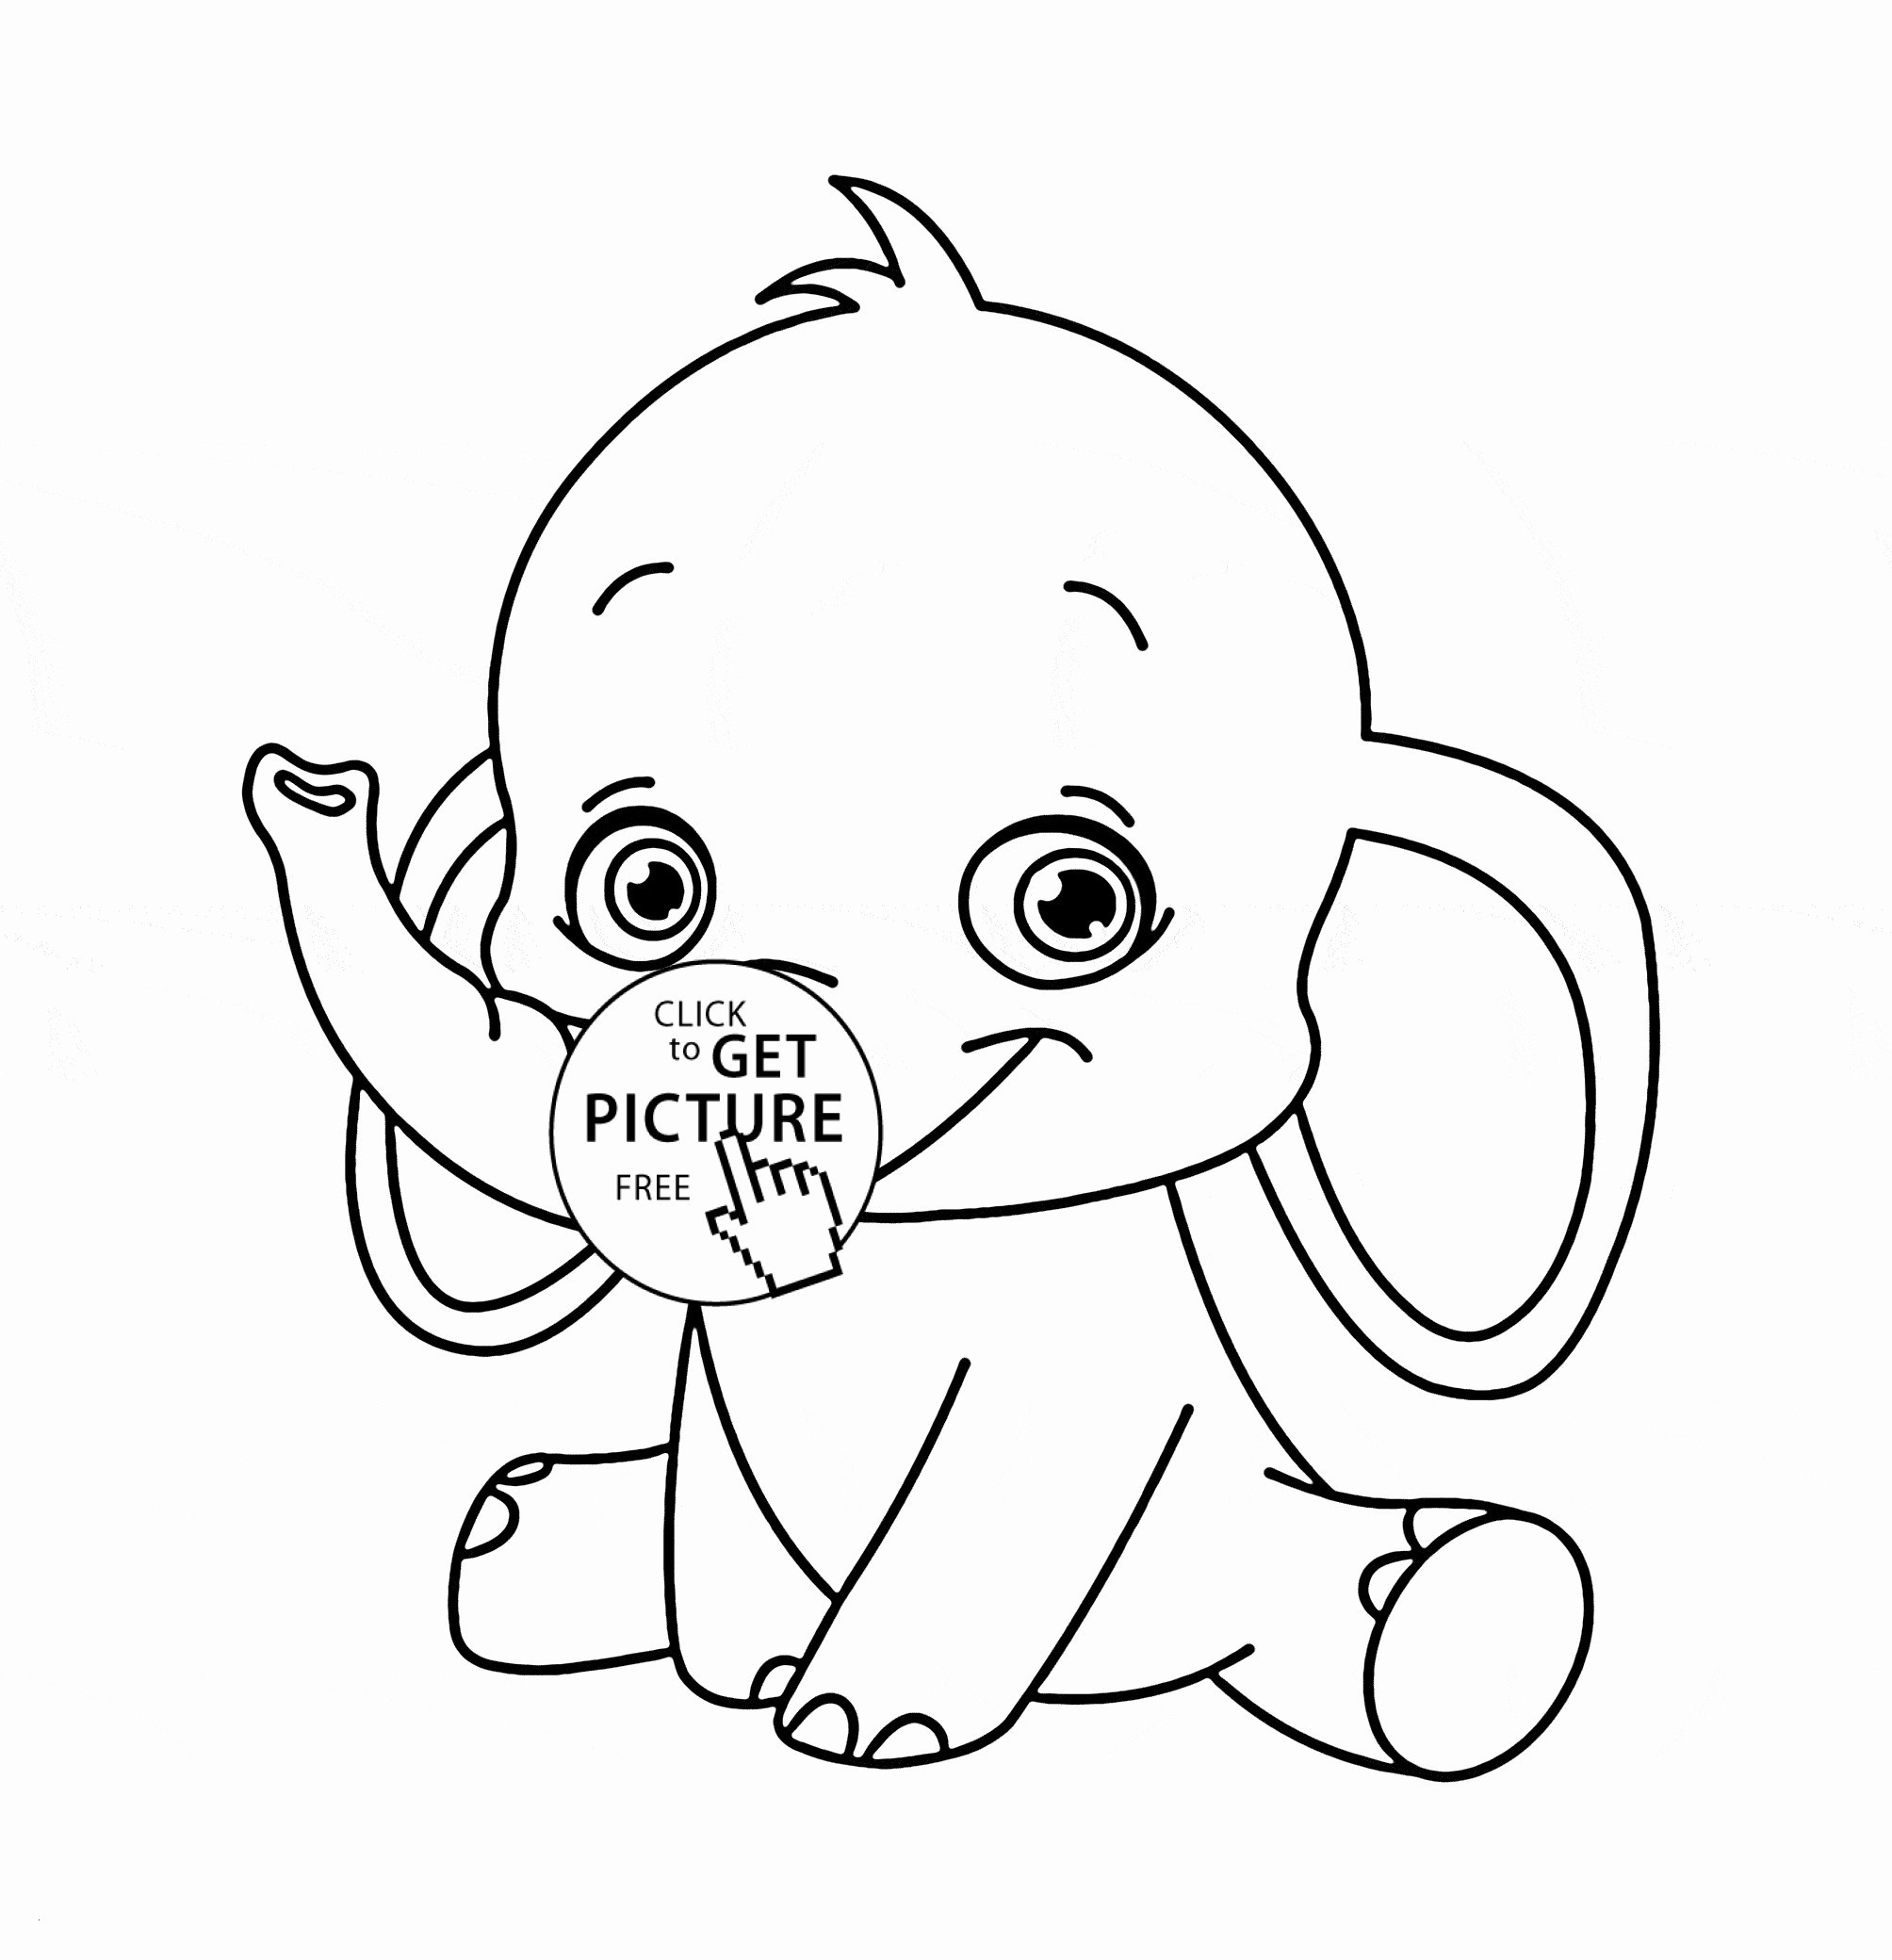 Baby Jungle Animal Coloring Pages  Download 16p - To print for your project